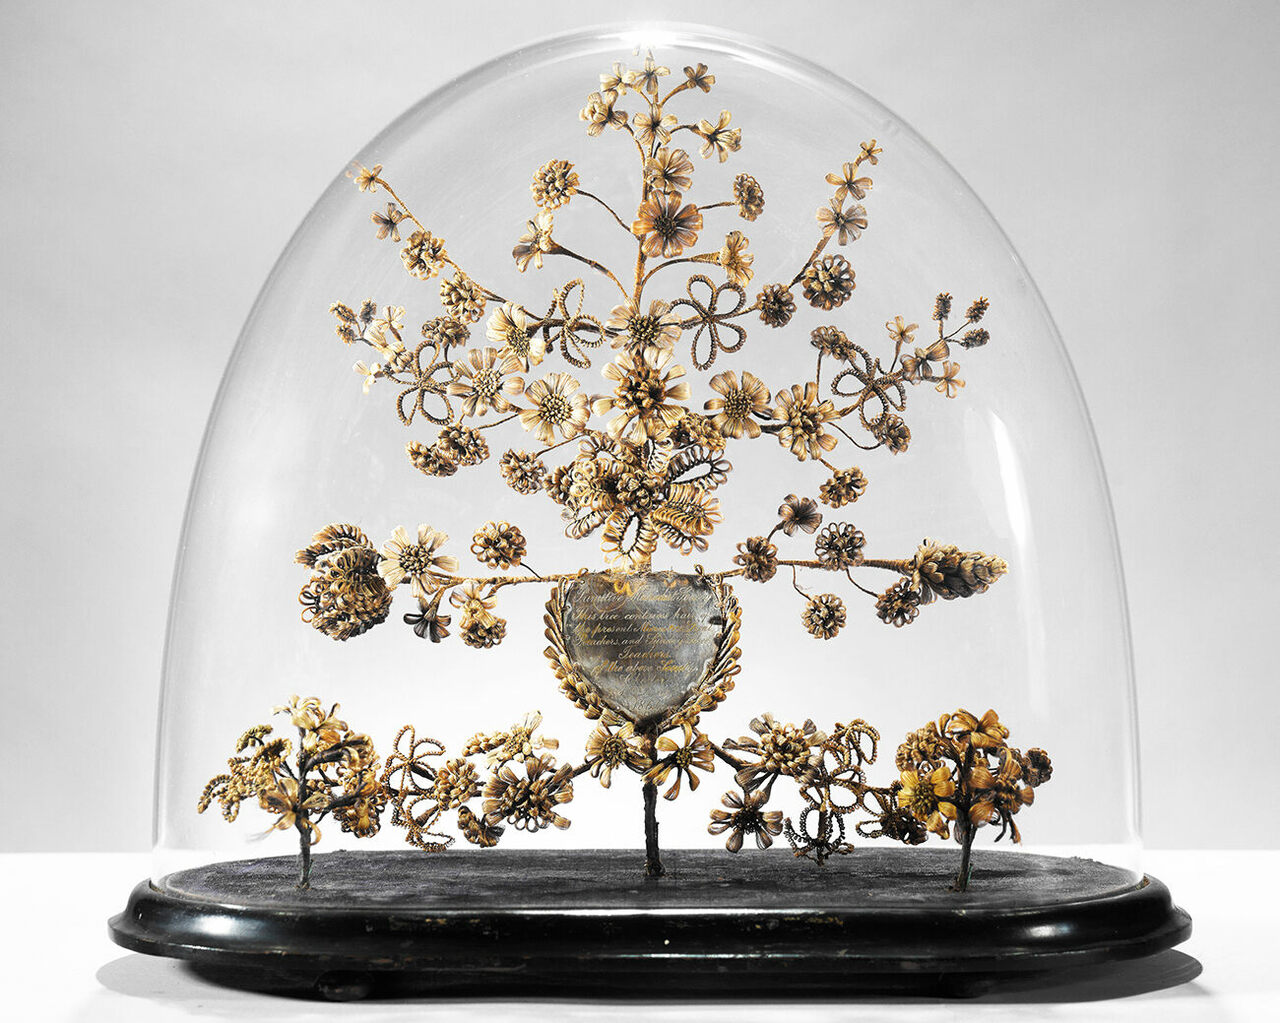 Atlas Decoration The Intricate Craft Of Using Human Hair For Jewelry Art And